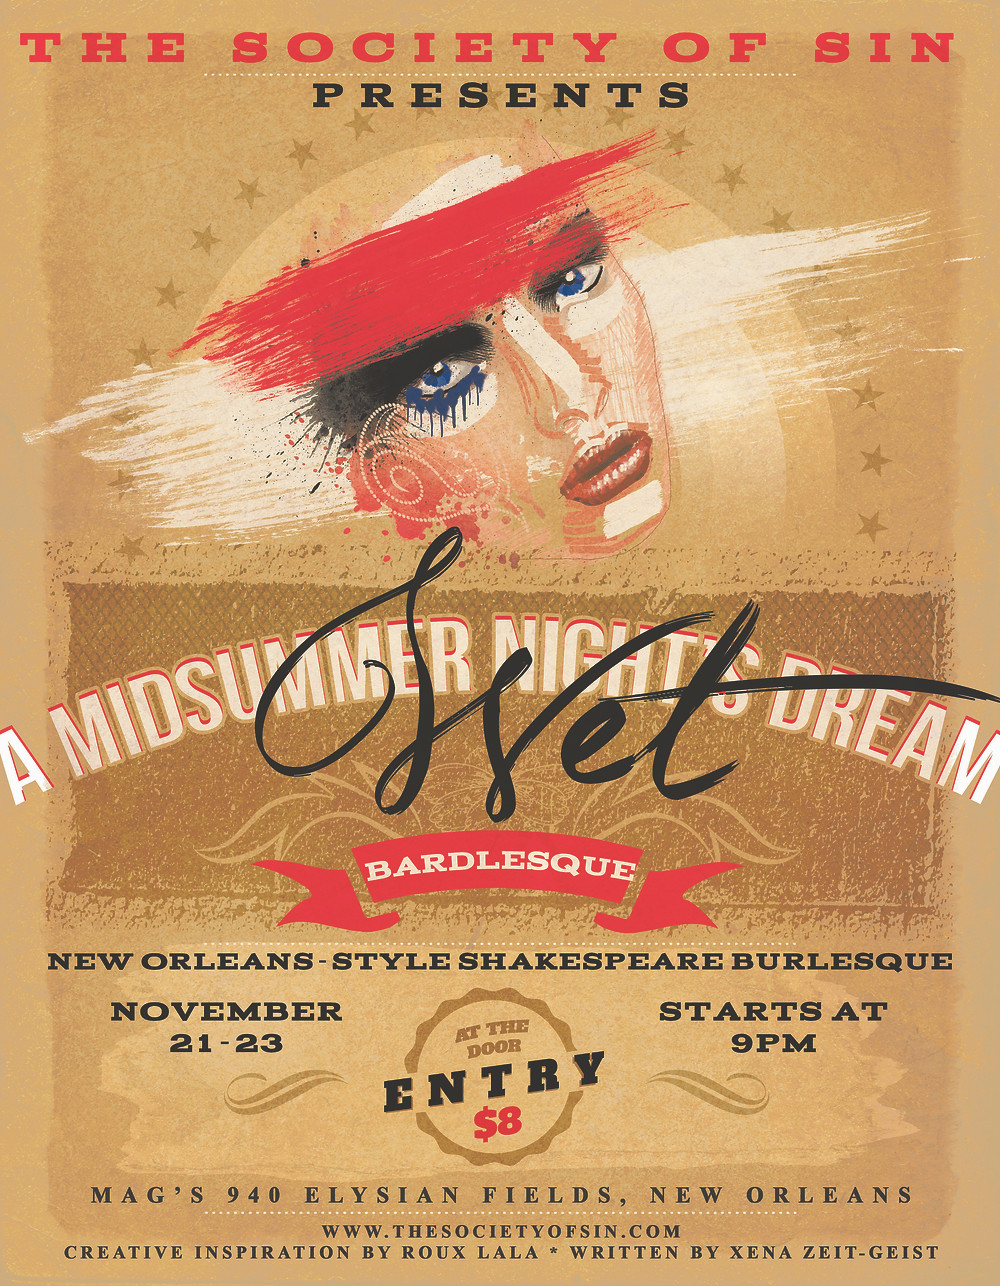 A Midsummer Night's Wet Dream New Orleans Shakespeare Burlesque The Society of Sin